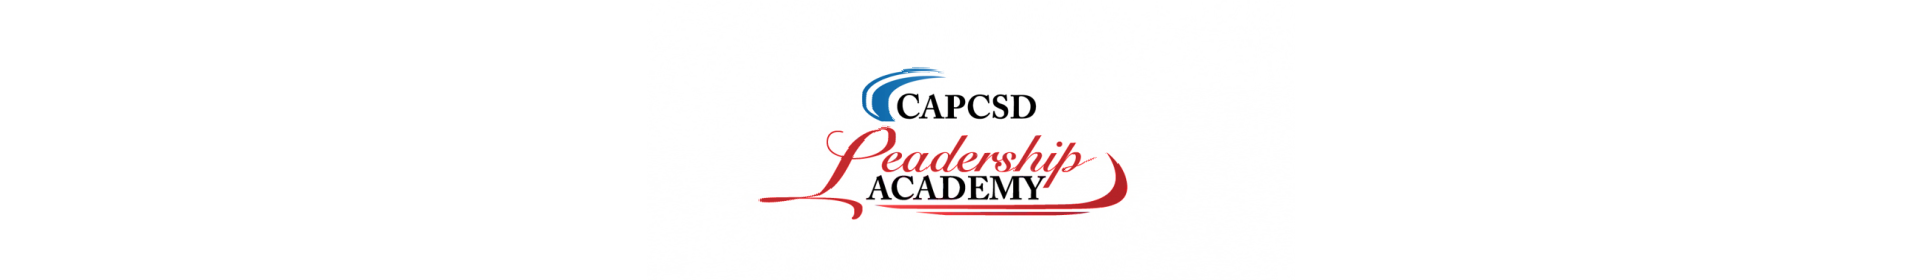 2020 Leadership Academy Event Banner